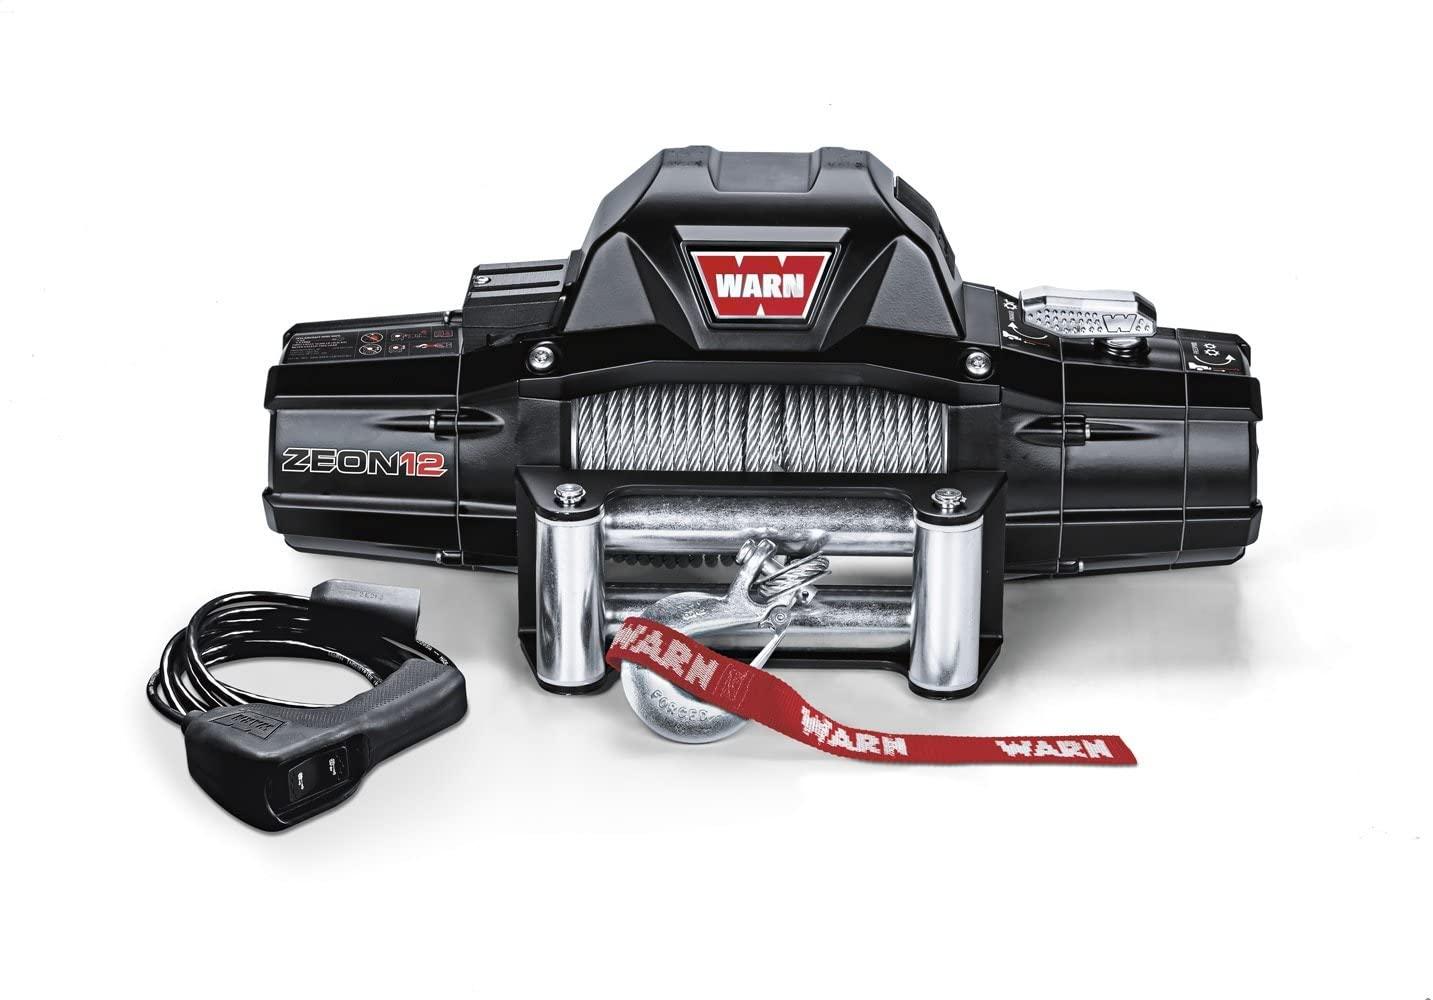 WARN 89120 ZEON 12 Electric 12V Winch with Steel Cable Wire Rope: 3/8